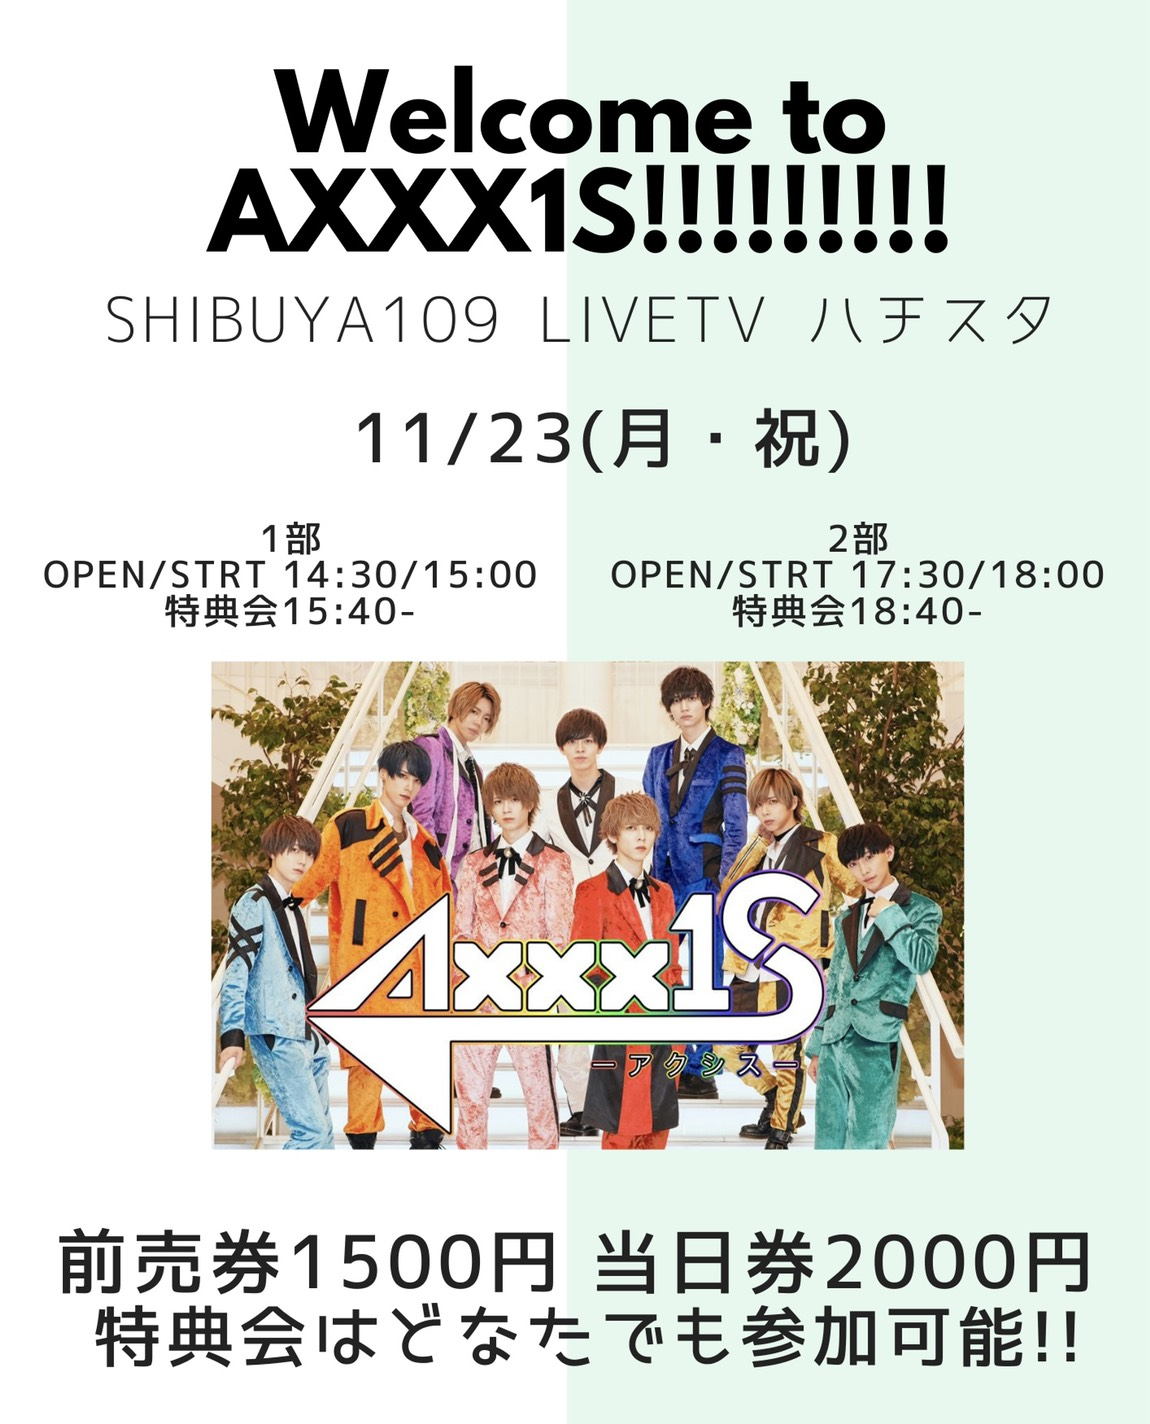 Welcome to AXXX1S in 109 ハチスタ 2部